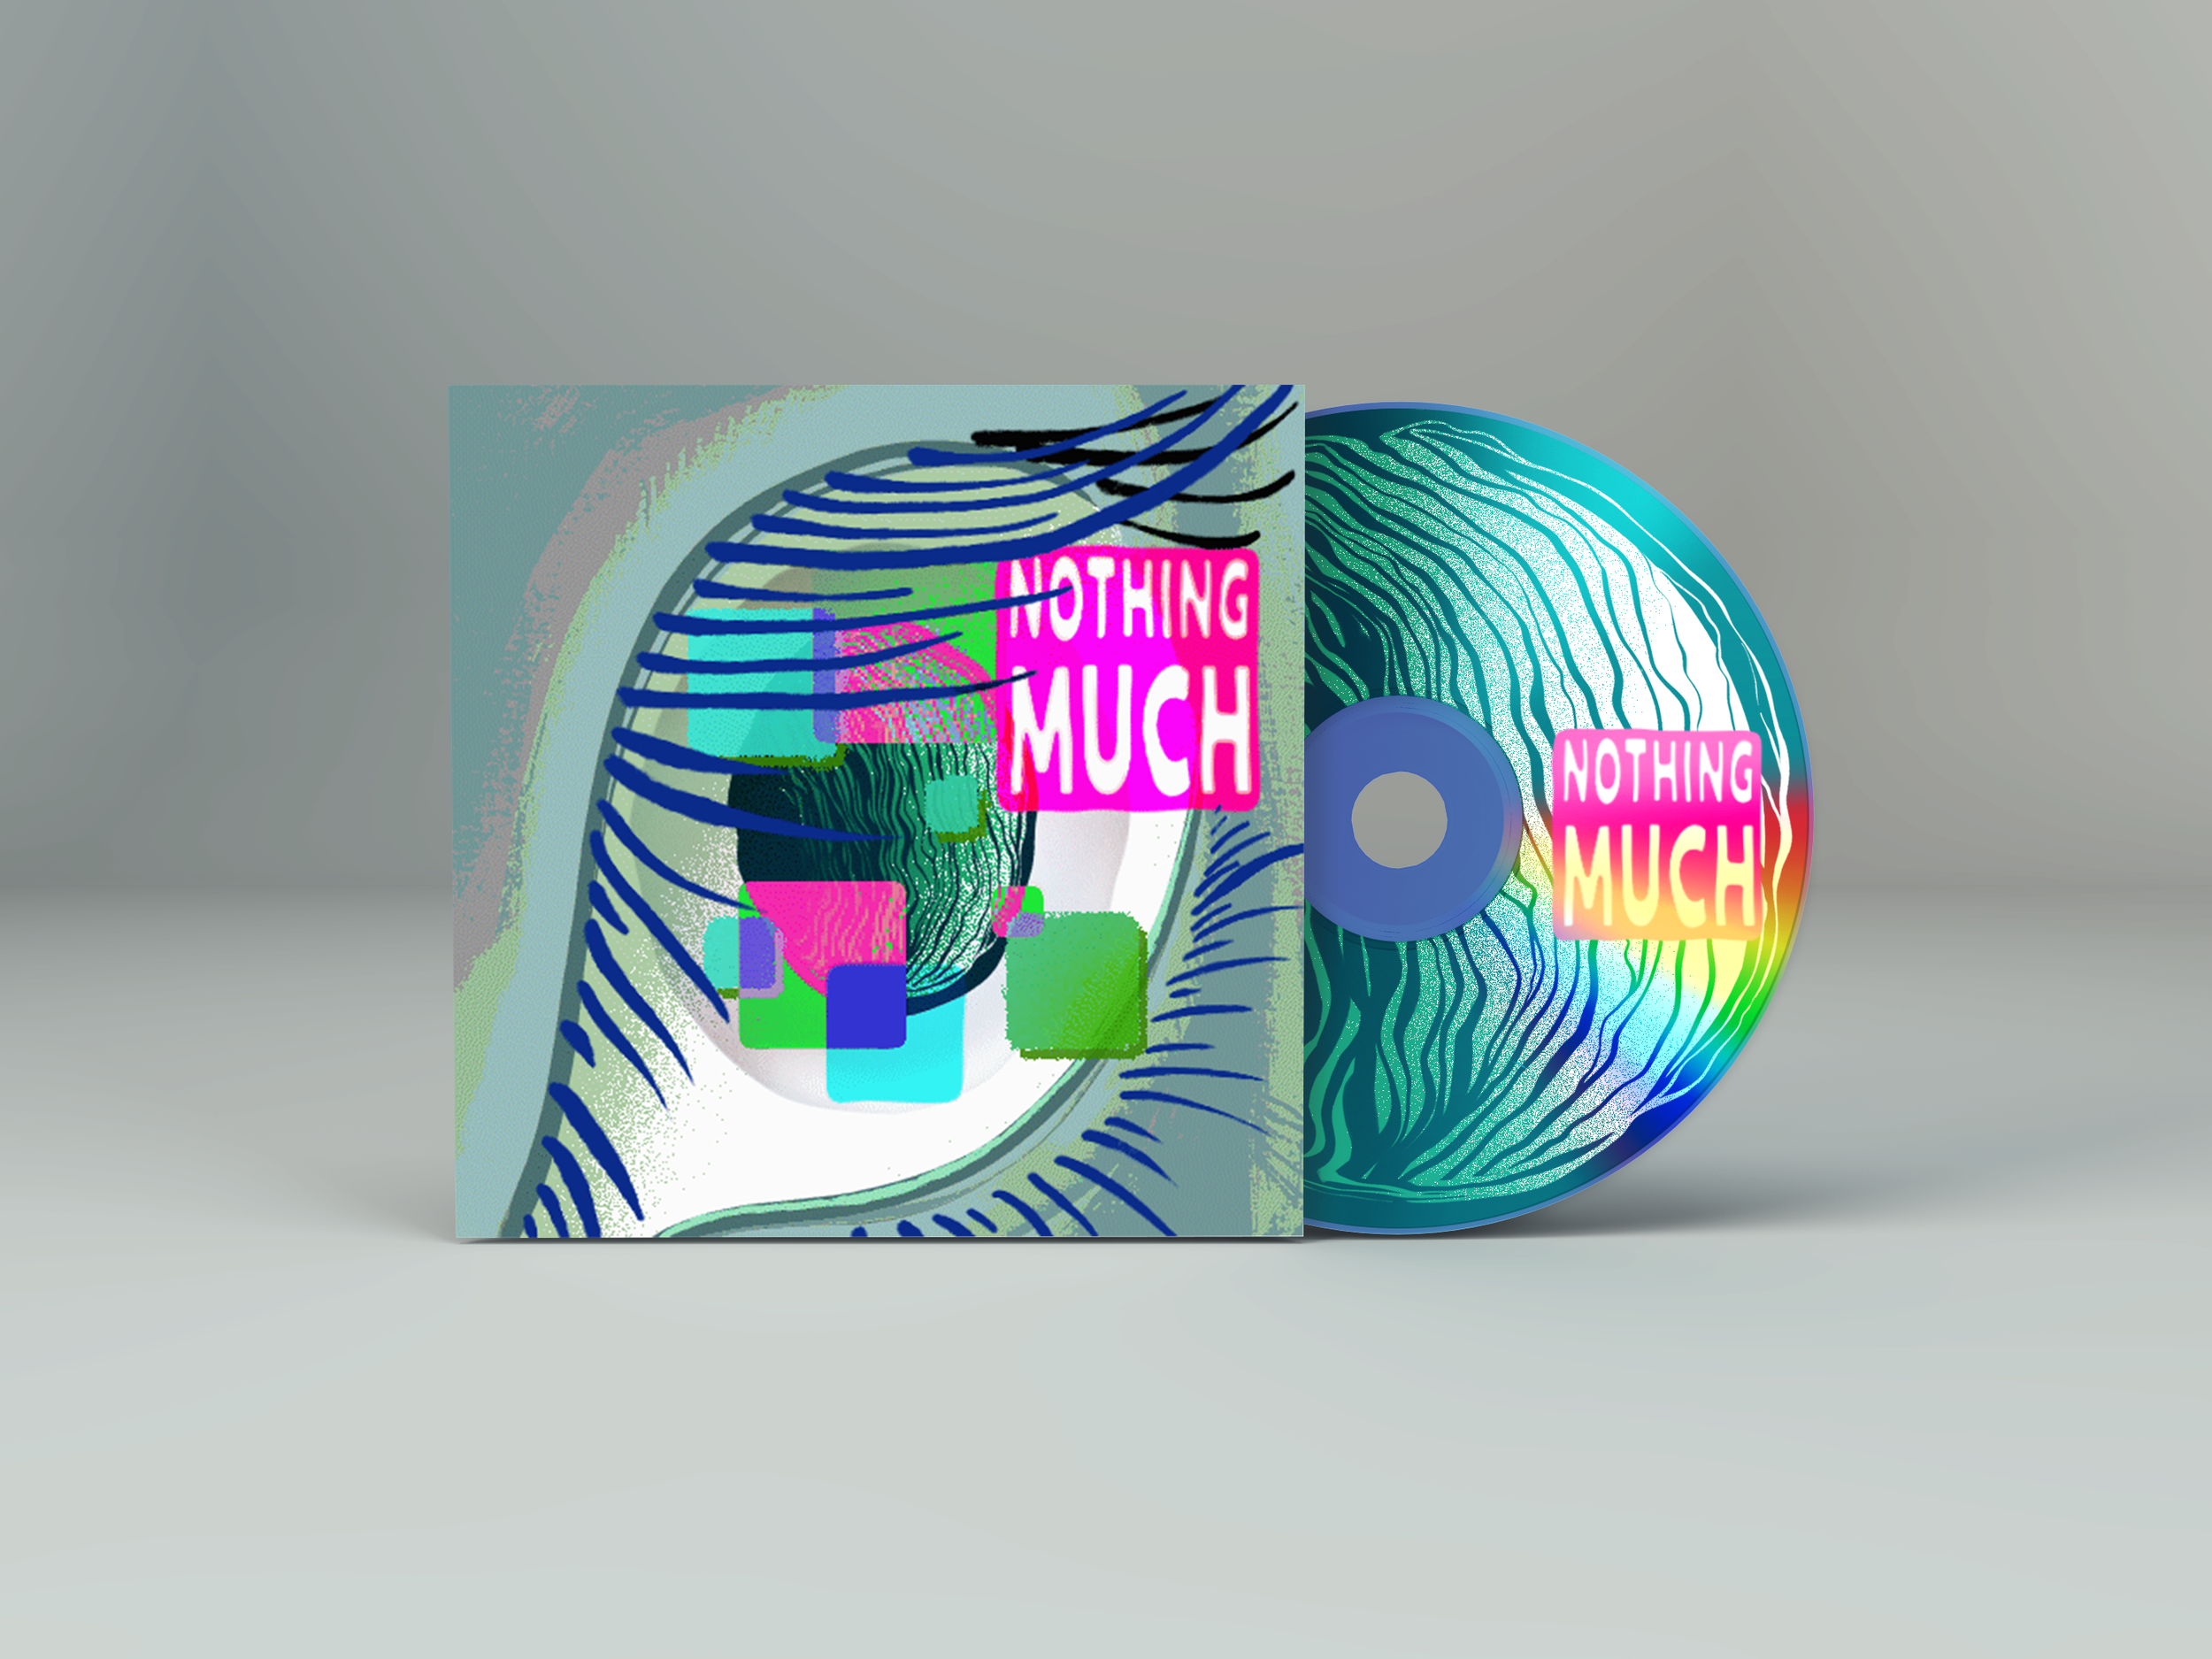 nothingmuch_CD Artwork Mockup.png